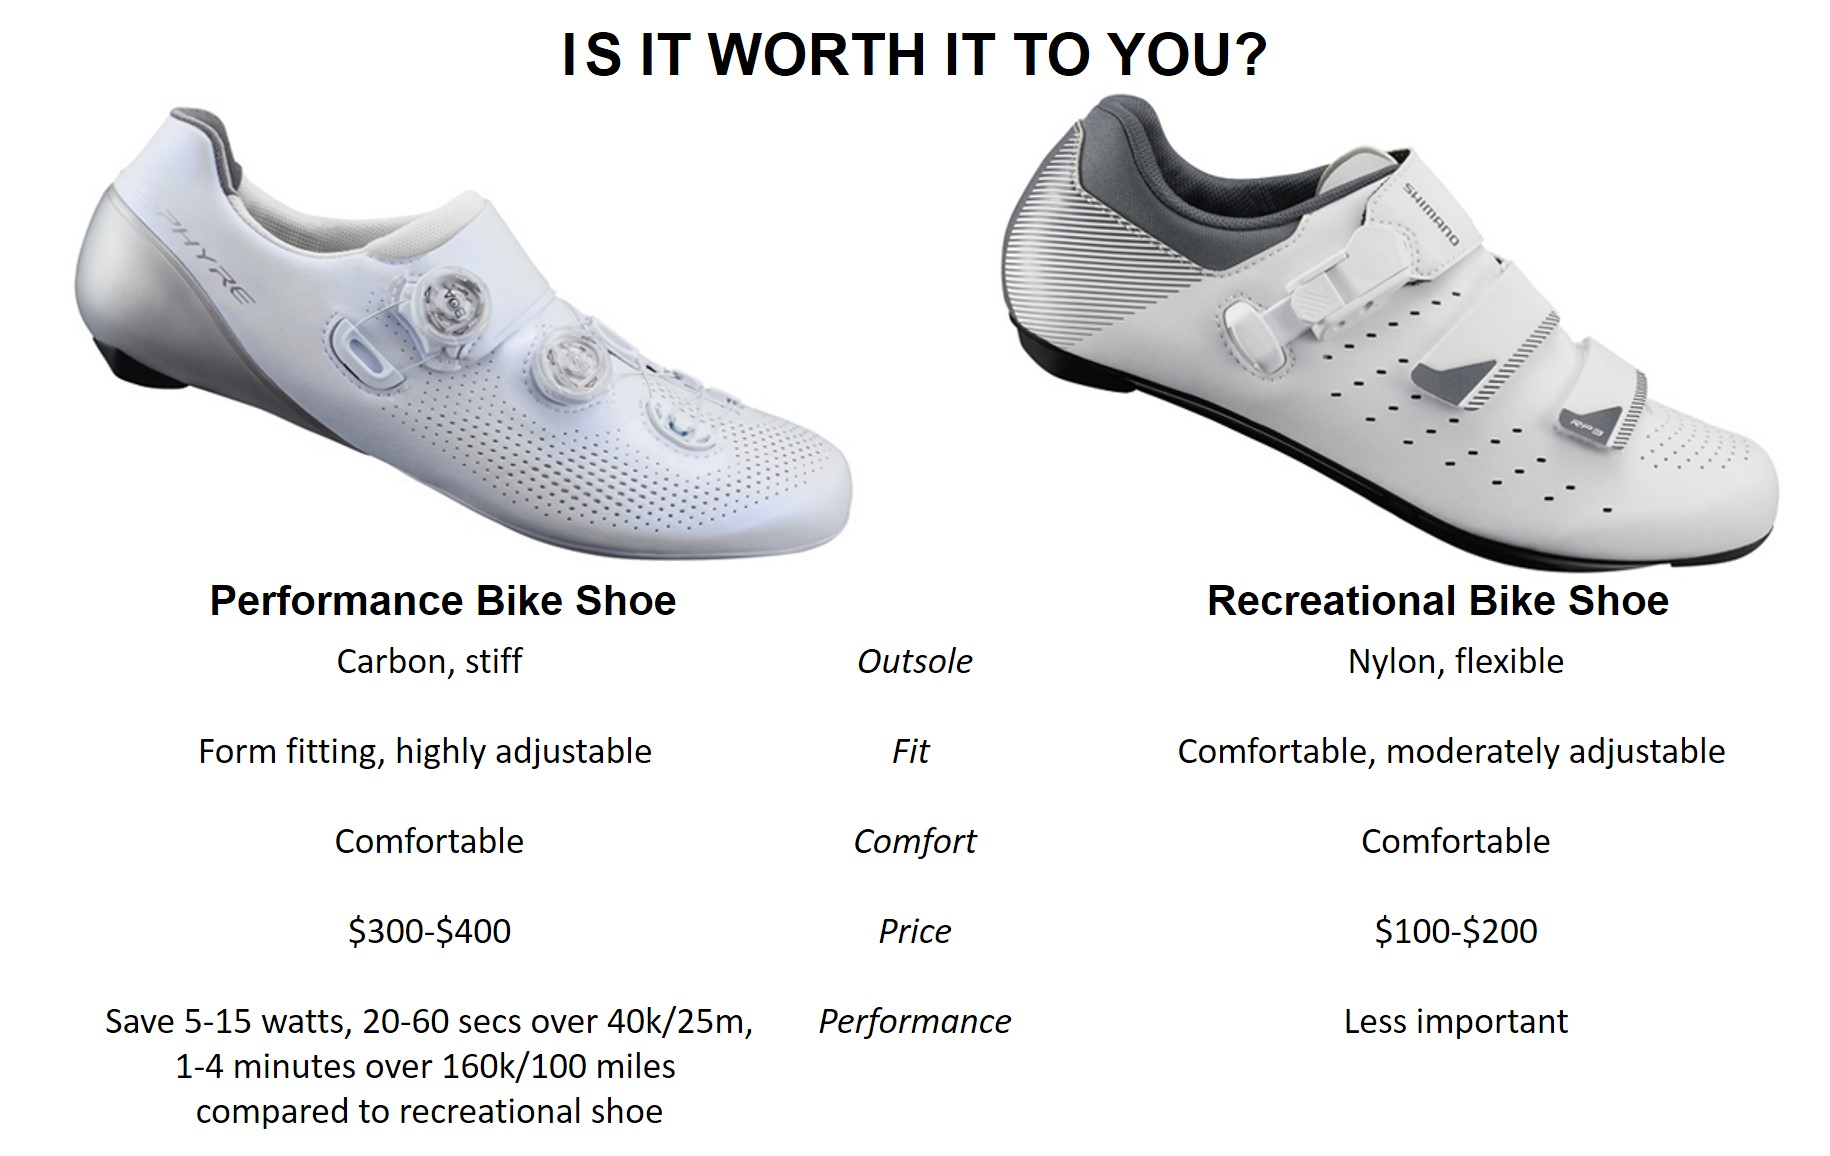 21f22217a I personally think spending 100 to 200 more is a deal for the improved  cycling performance and pleasure you get from your shoes ...